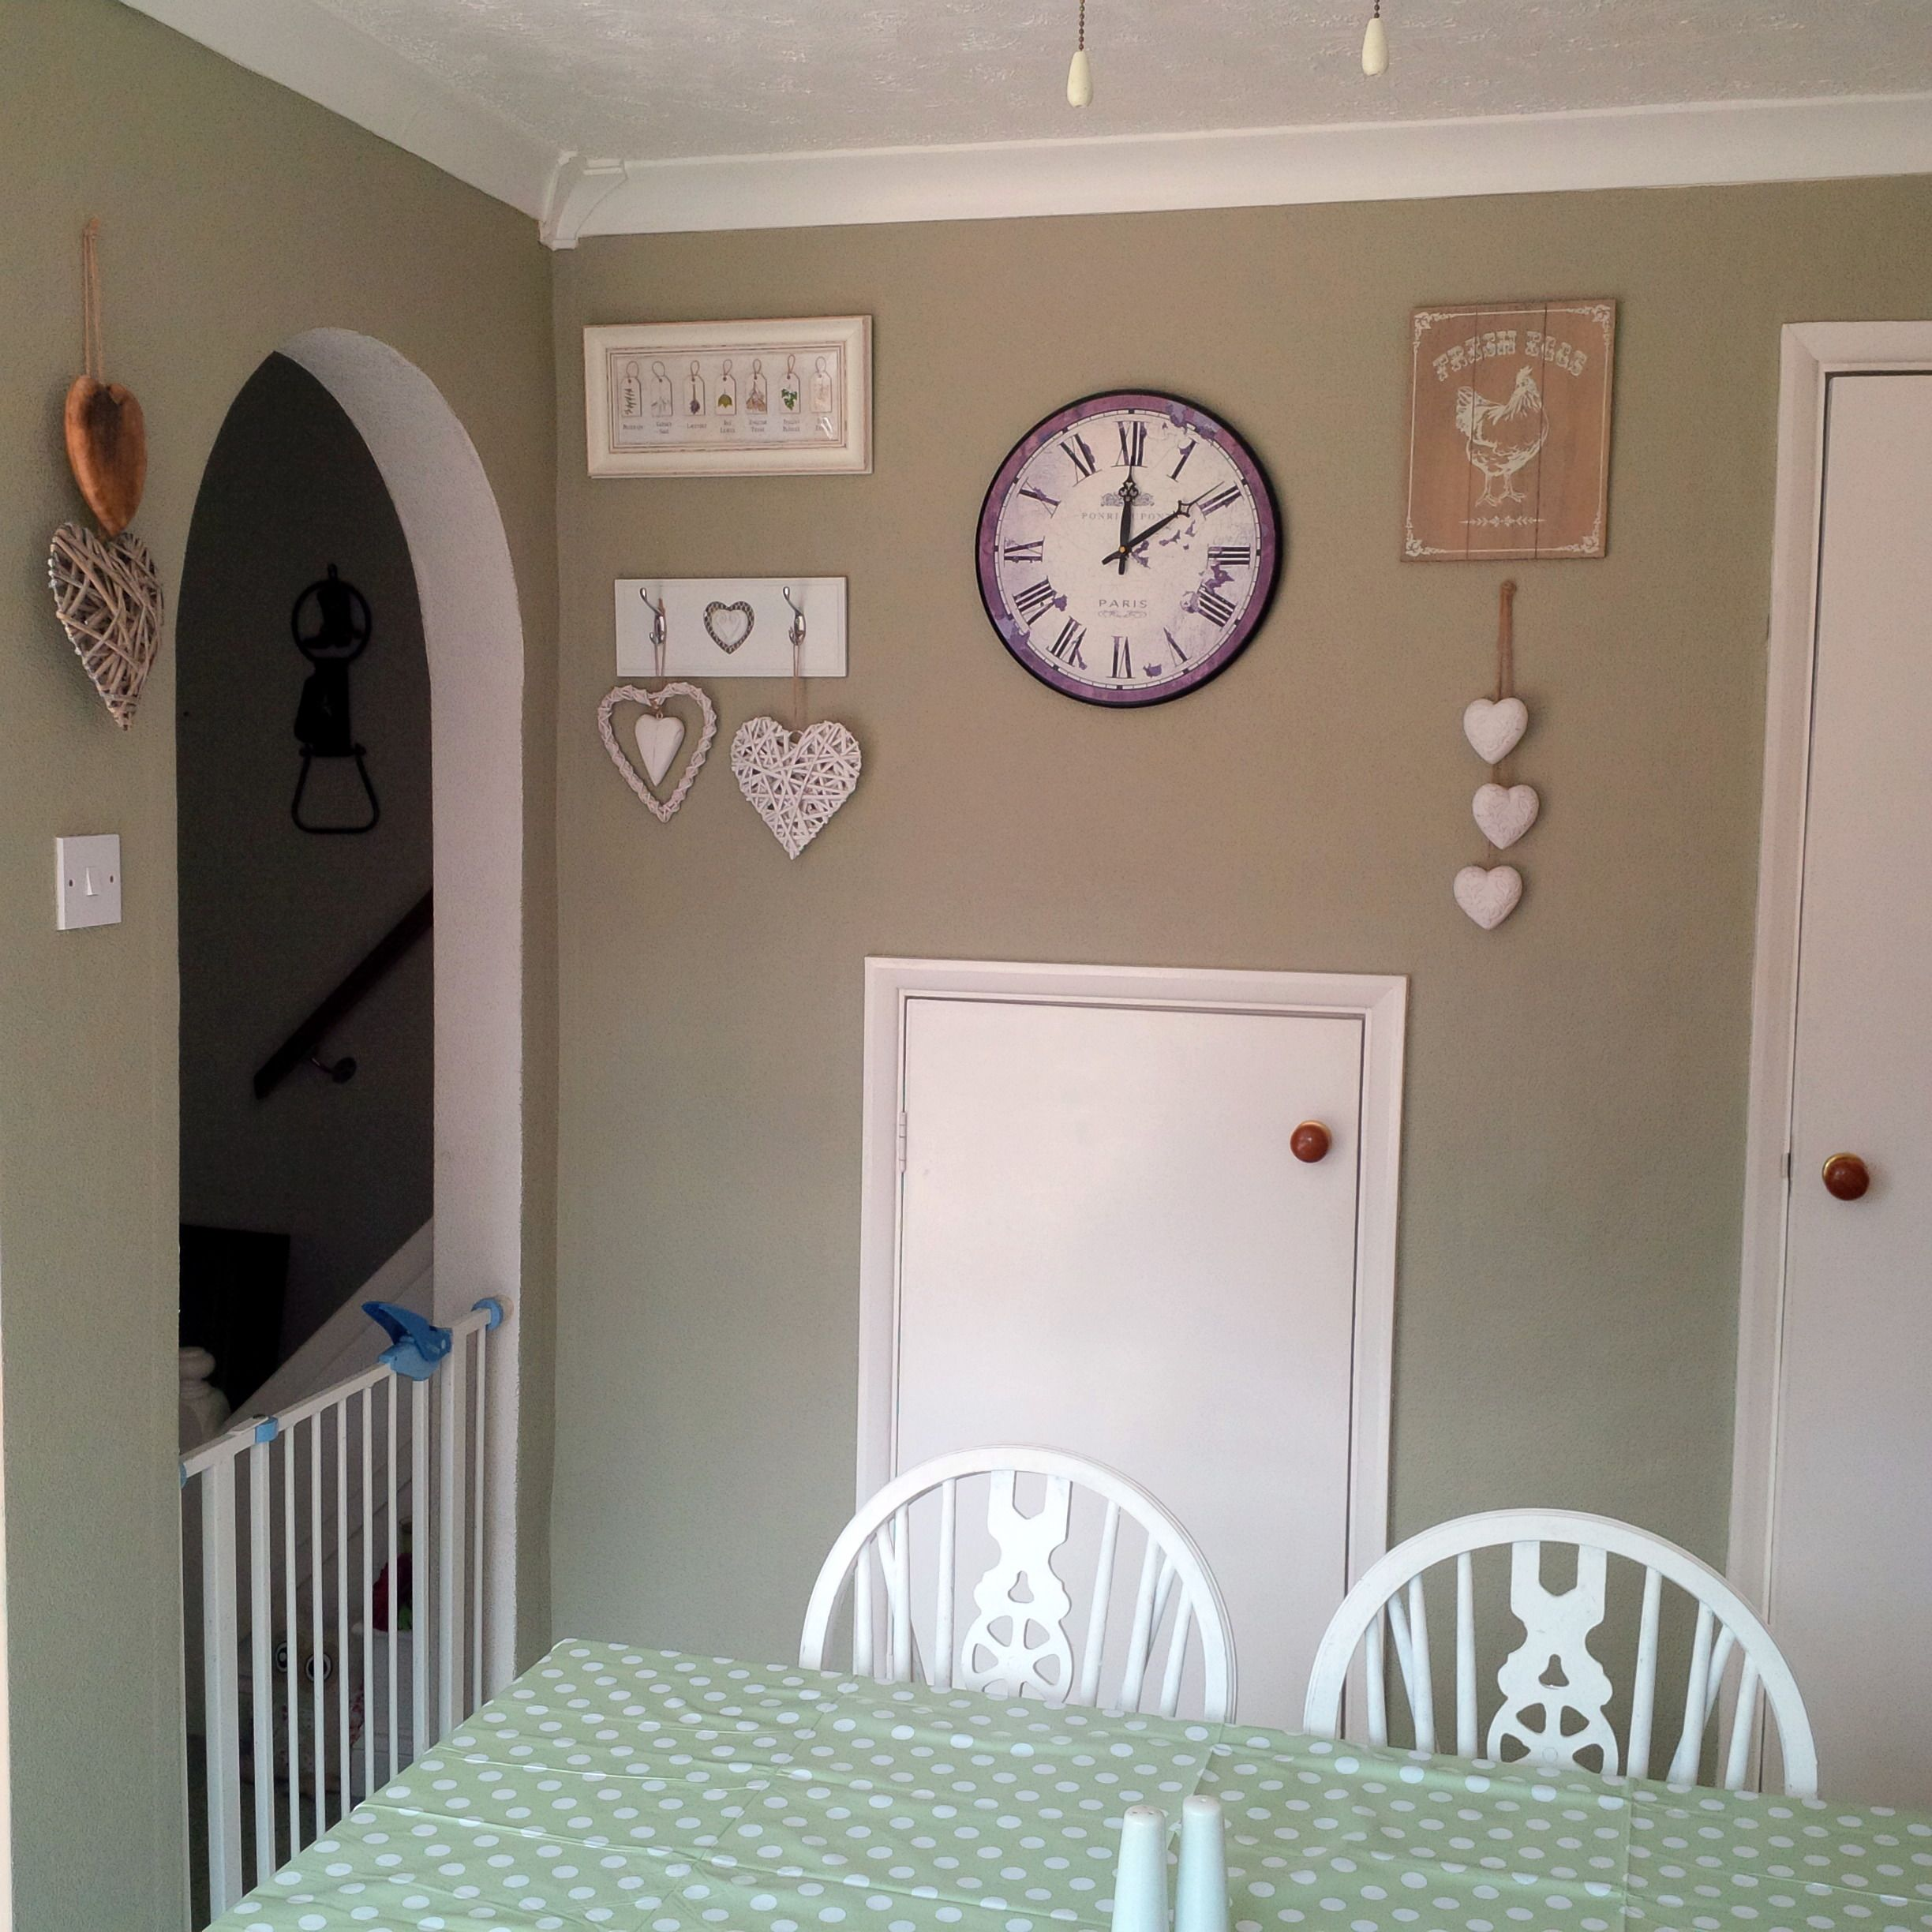 Dulux Kitchen Paint Colours: I Used Dulux Overtly Olive Matt Emulsion For Around The